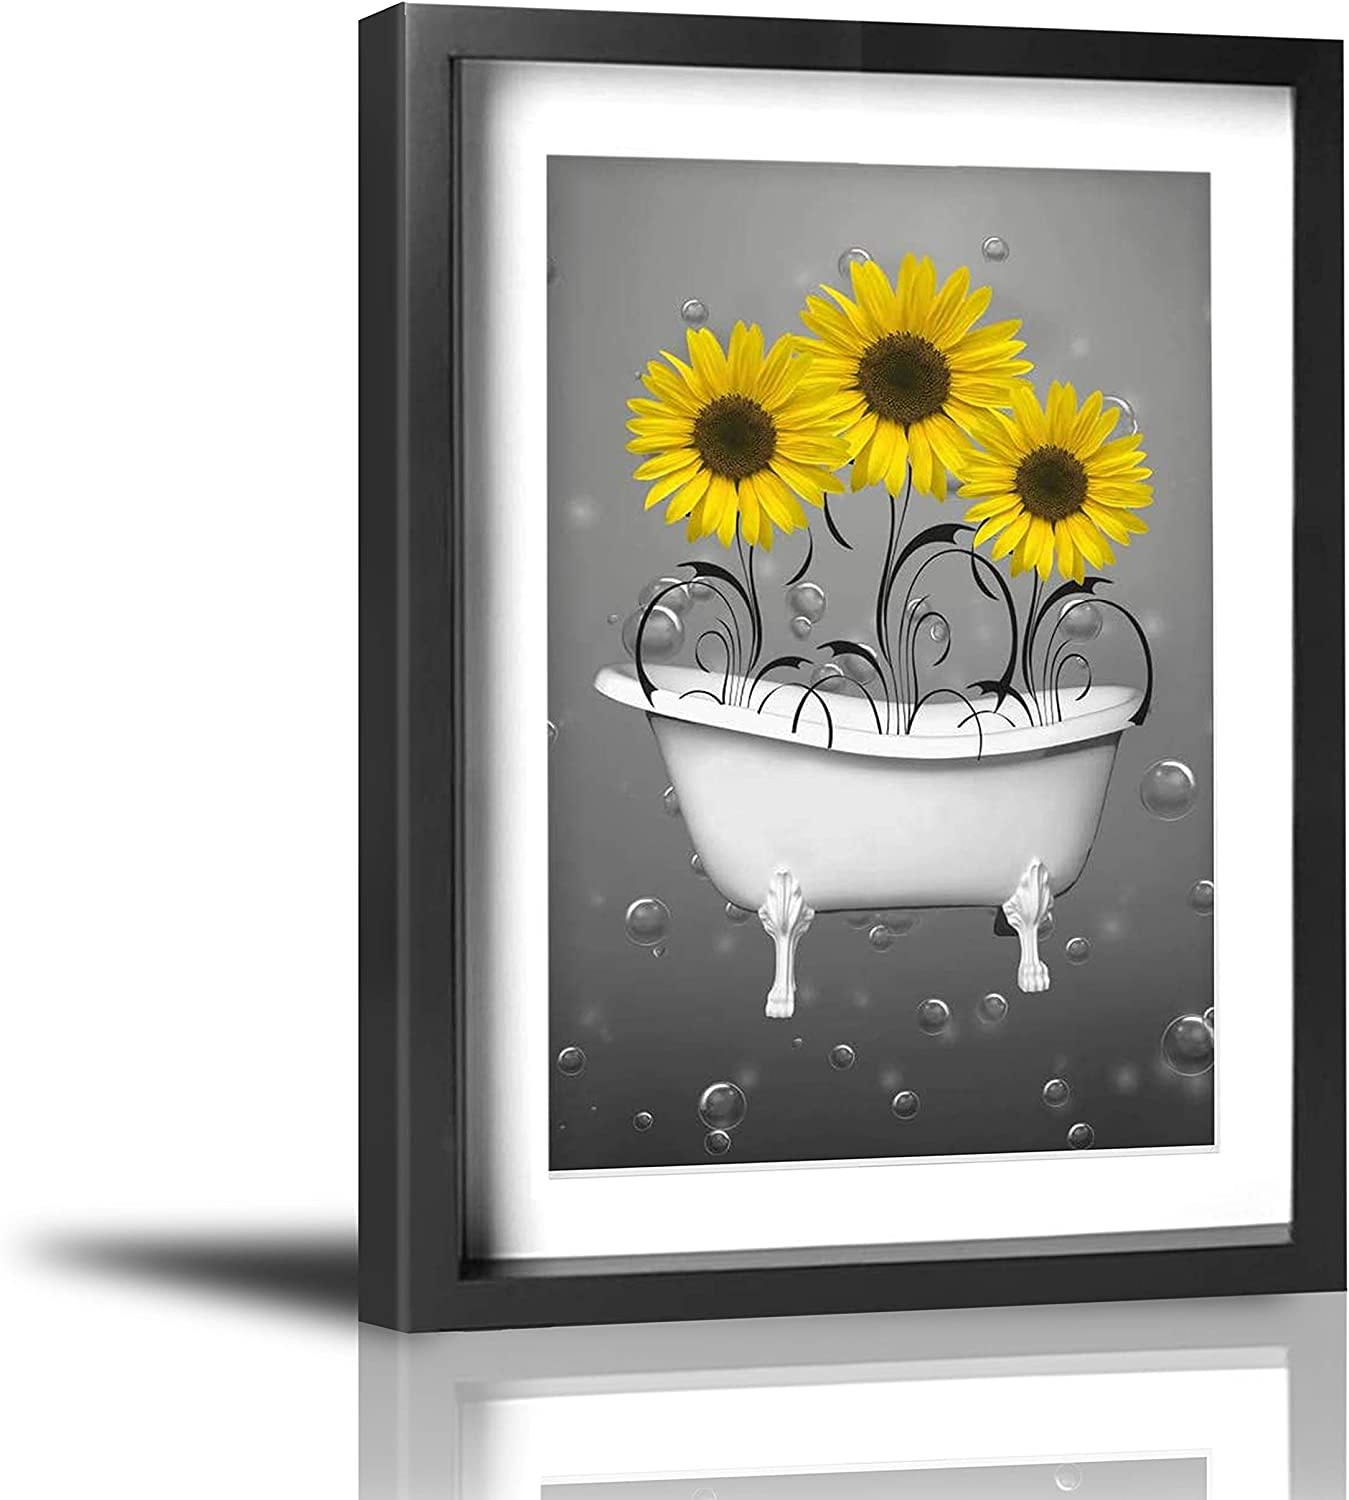 Amazon Com Coolertaste Yellow Grey Sunflowers In Bathtub Bubbles Bathroom Wall Decor Vintage Rustic Canvas Wall Art Prints Framed Pictures Artwork Ready To Hang 12 X 16 Posters Prints